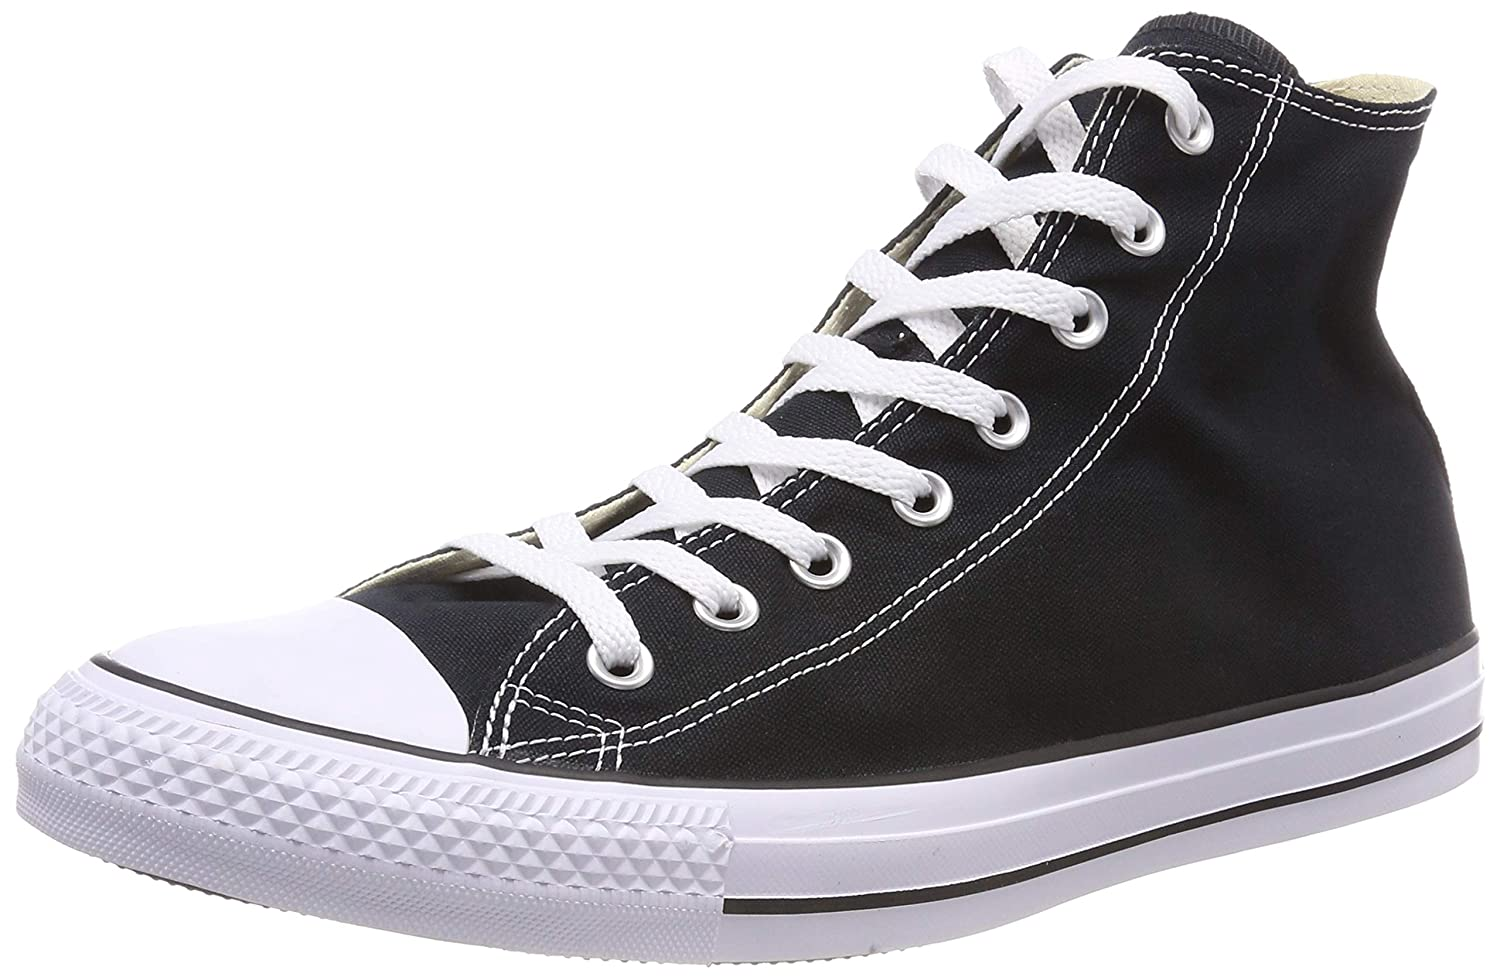 Converse Ctas Converse Core Hi, Baskets mode Noir mode mixte adulte Noir 5e70e20 - conorscully.space